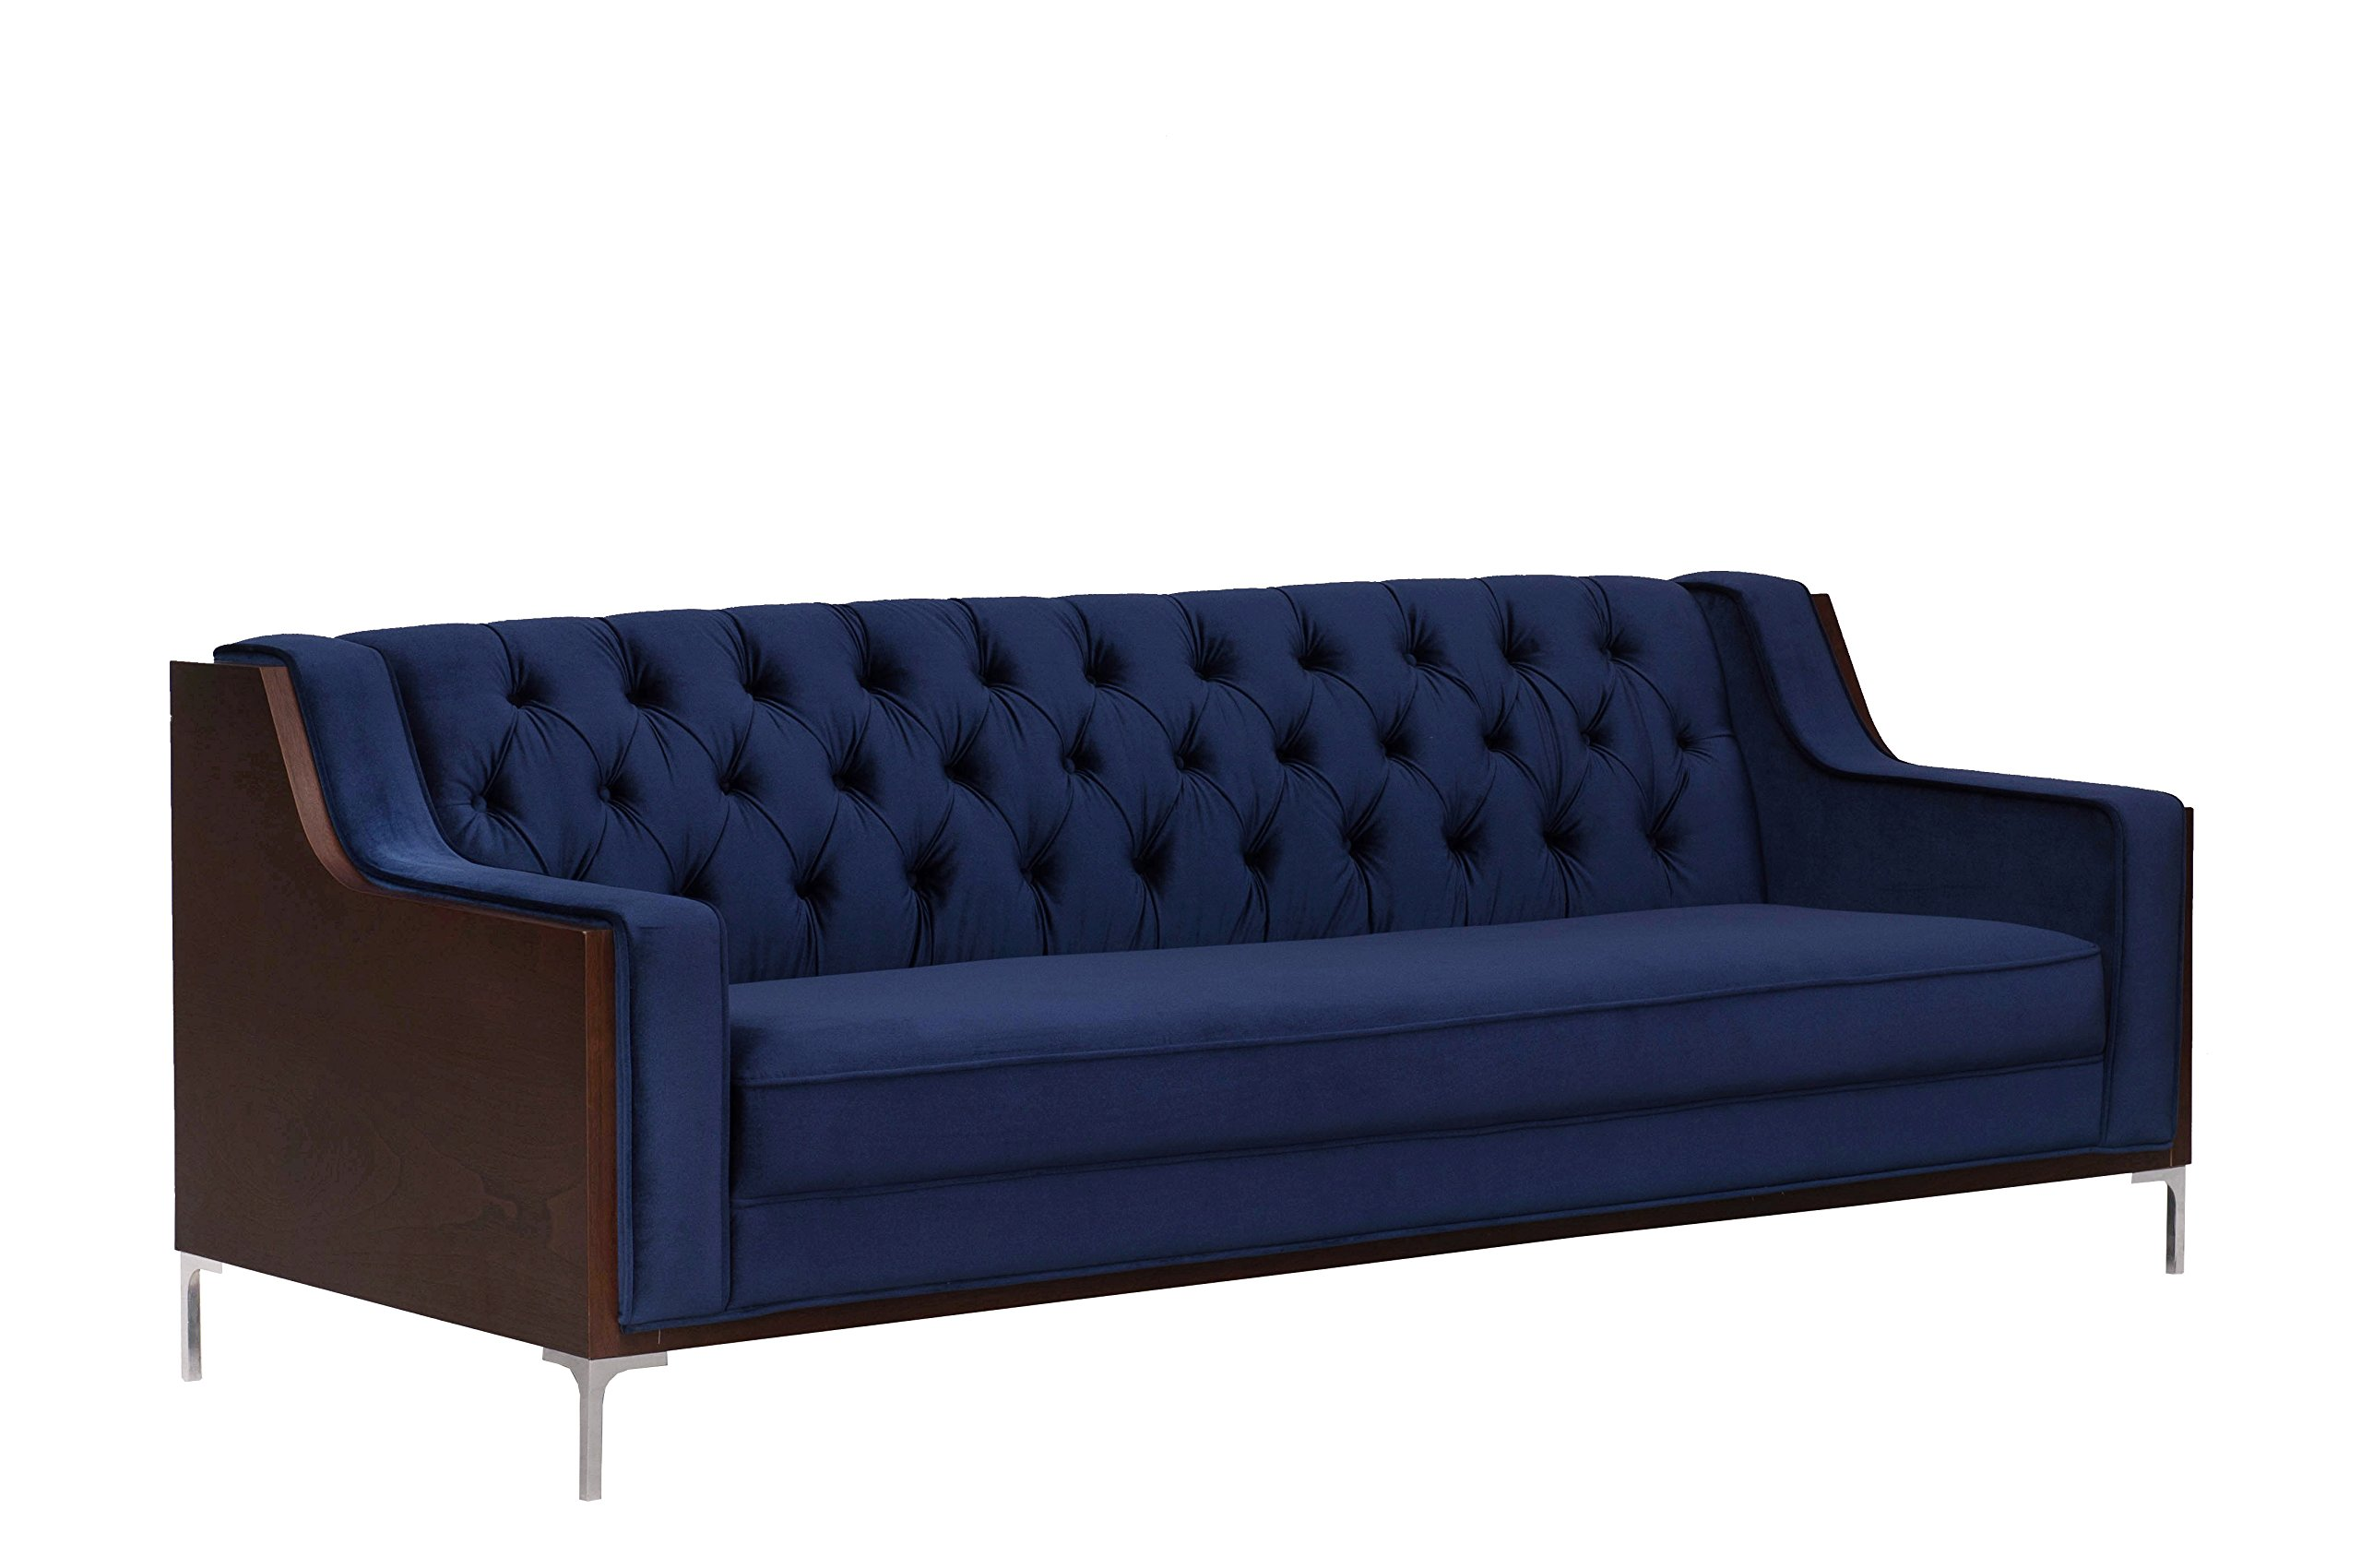 Iconic Home Clark Sofa Button Tufted Velvet Walnut Finish Swoop Arm Wood Frame with Polished Metal Legs, Modern Contemporary, Navy by Iconic Home (Image #4)